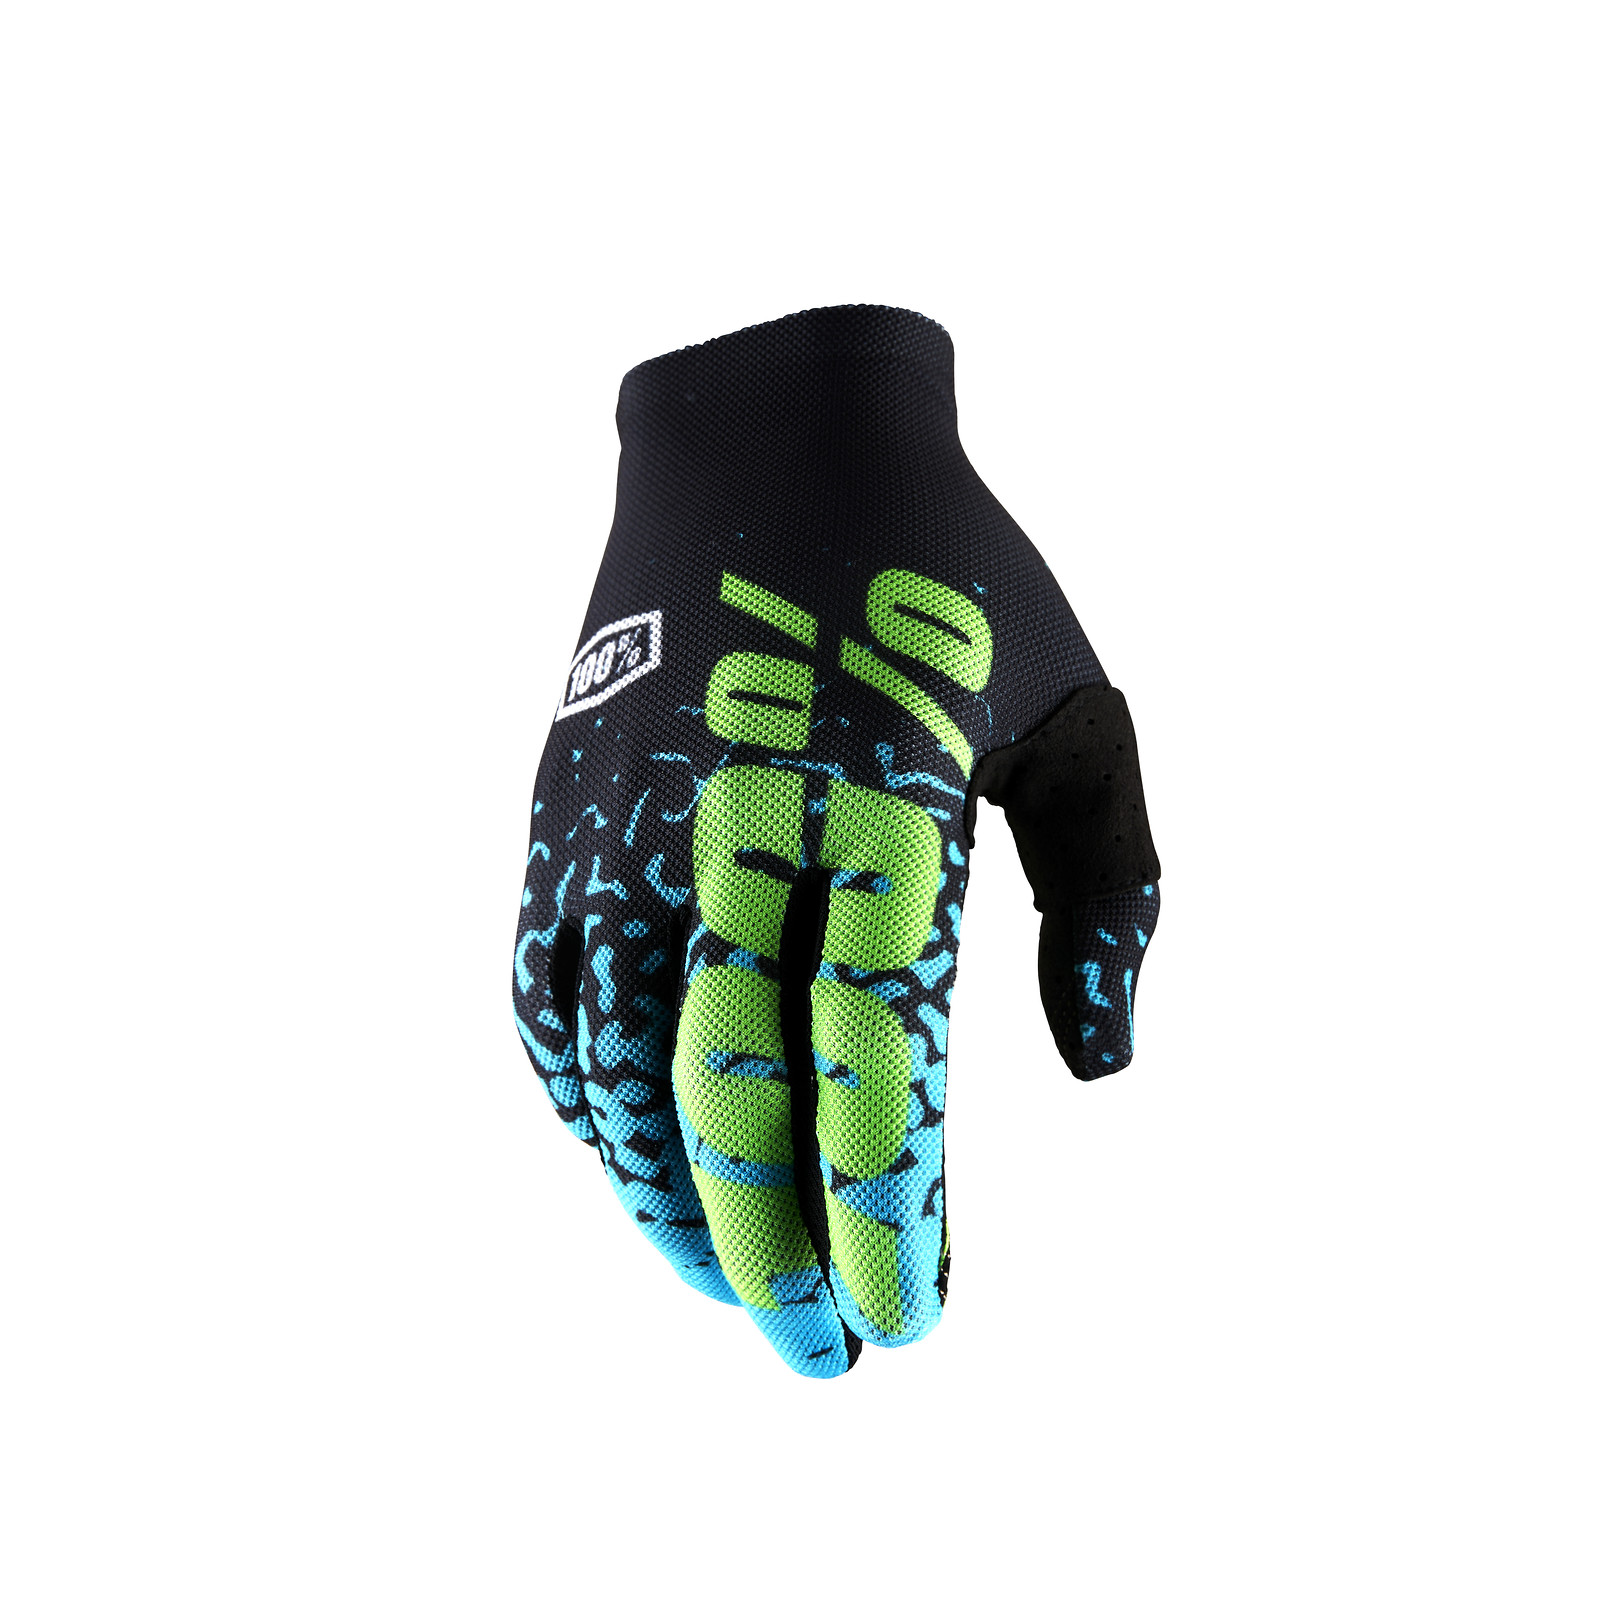 Celium 2 Glove - Flash Black / Cyan - 100percent - Motocross Pictures - Vital MX